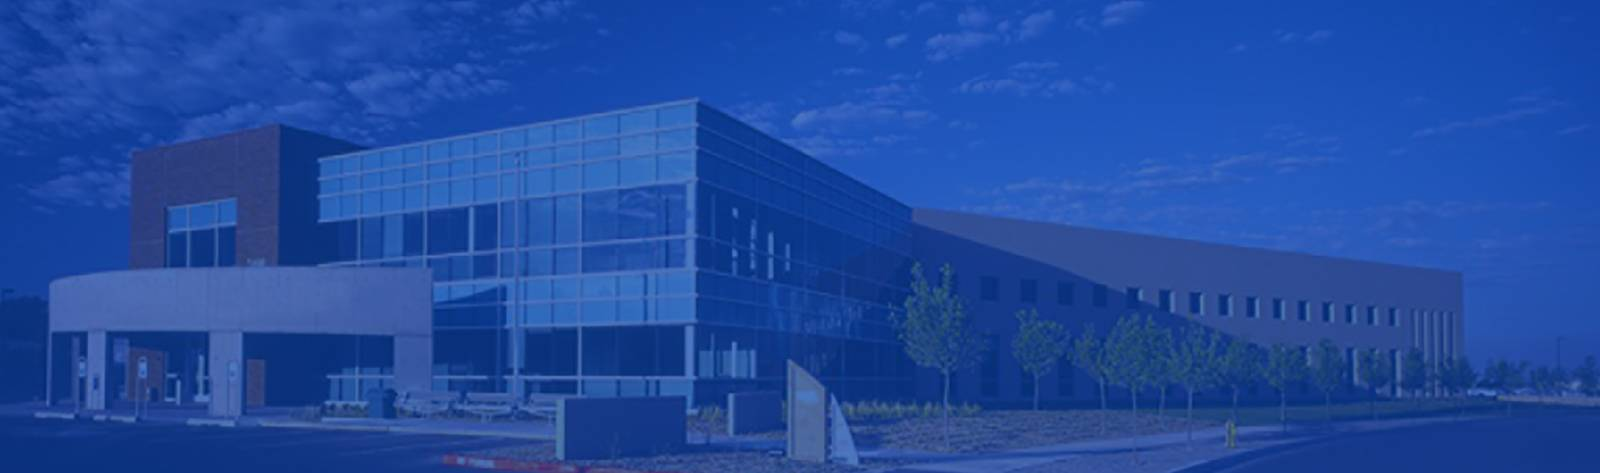 Large exterior Office Building with windows and trees in Albuquerque - Blue sheen